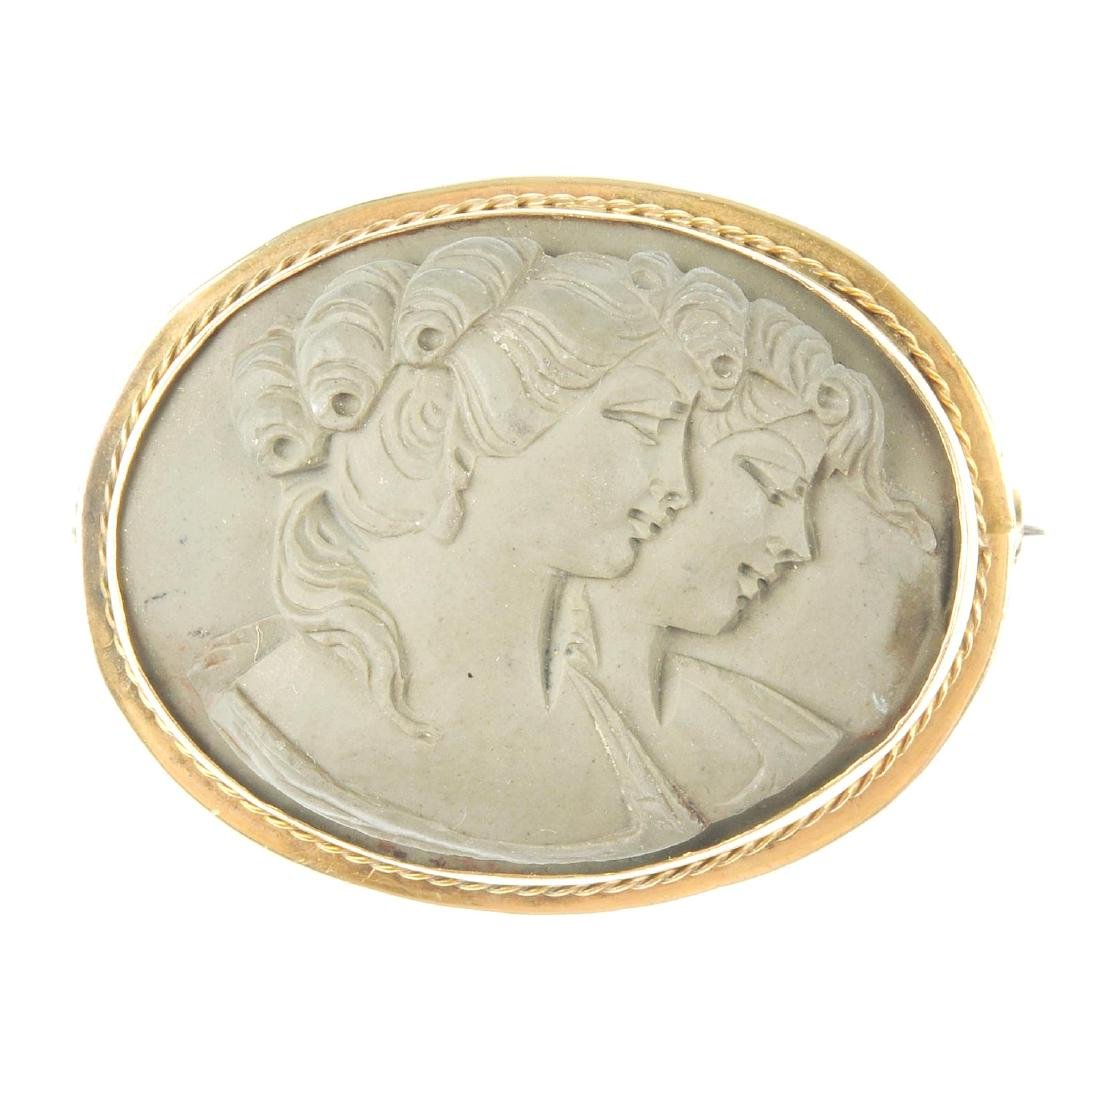 A 9ct gold lava cameo brooch. Of oval outline, the